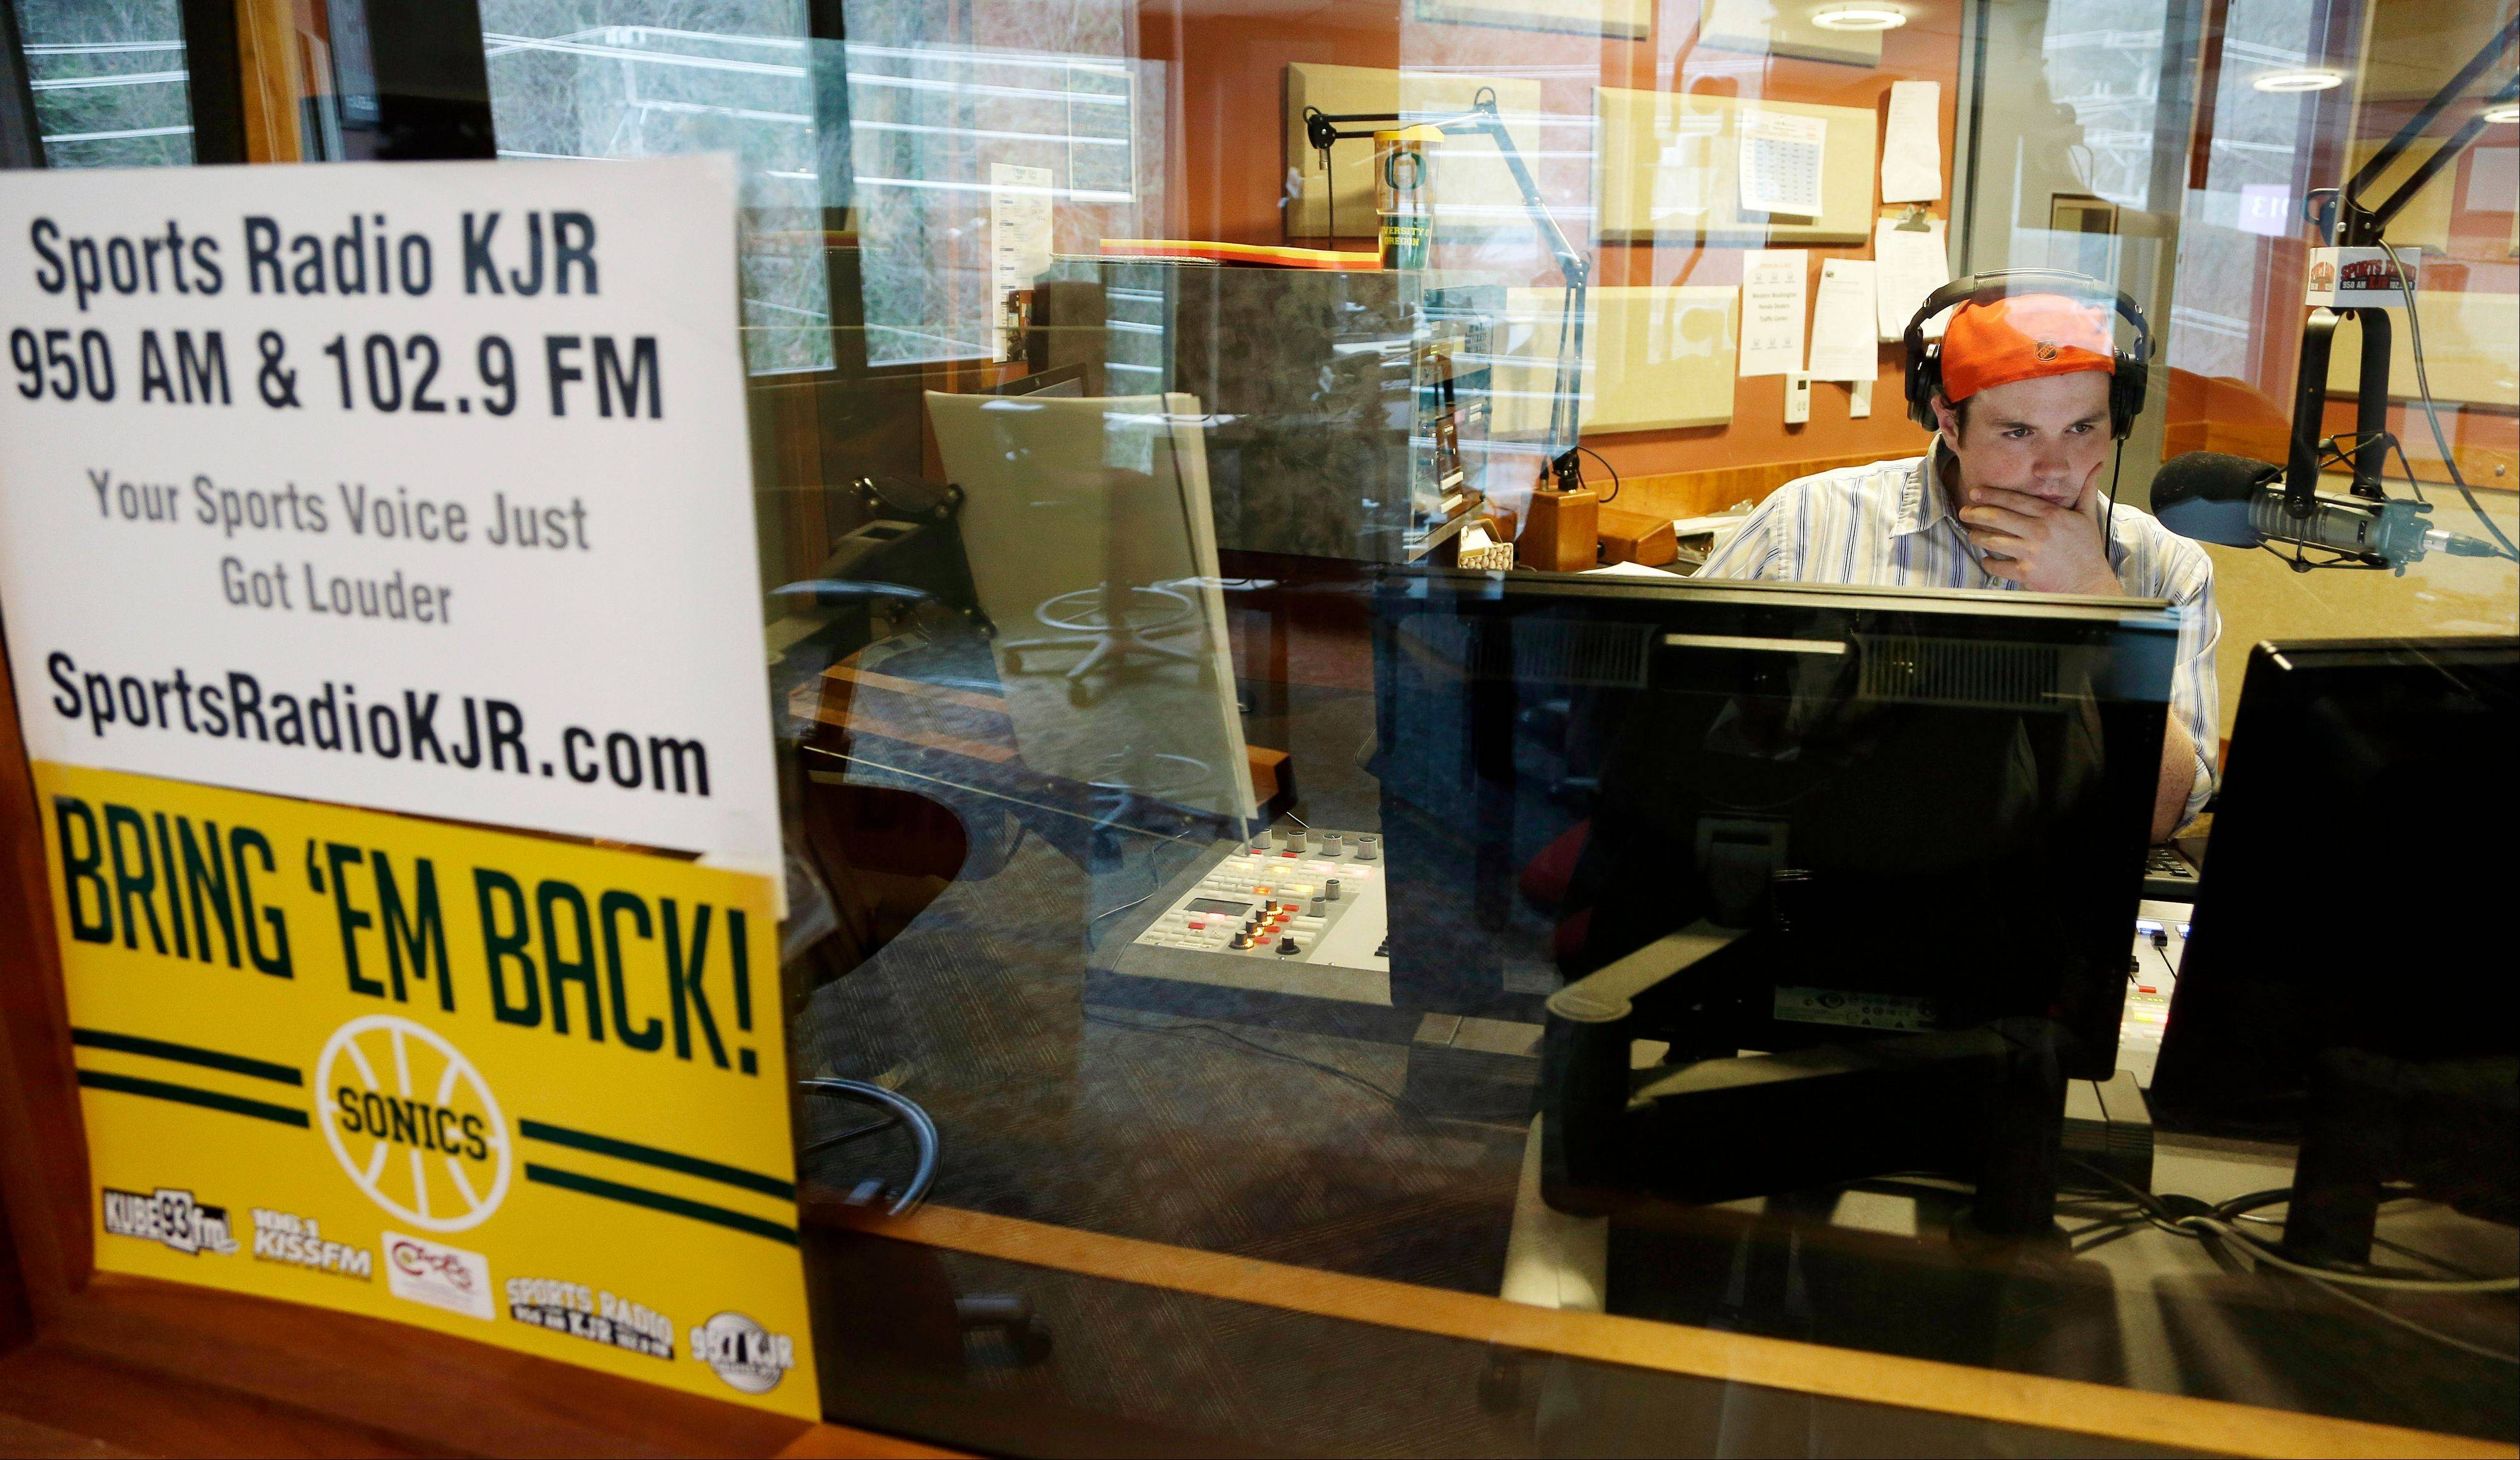 Kevin Shockey, producer of the Ian Furness Show, works in a radio booth at sports radio station KJR in Seattle, Monday, Jan. 21, 2013, next to a sign that reads �Bring �Em Back!� in reference to the Seattle SuperSonics NBA basketball team, which were sold and moved to Oklahoma City in 2008. Phone lines at the station were full as fans reacted to the news that the Maloof family, owners of the Sacramento Kings, had agreed to sell the team to a Seattle group led by investor Chris Hansen.